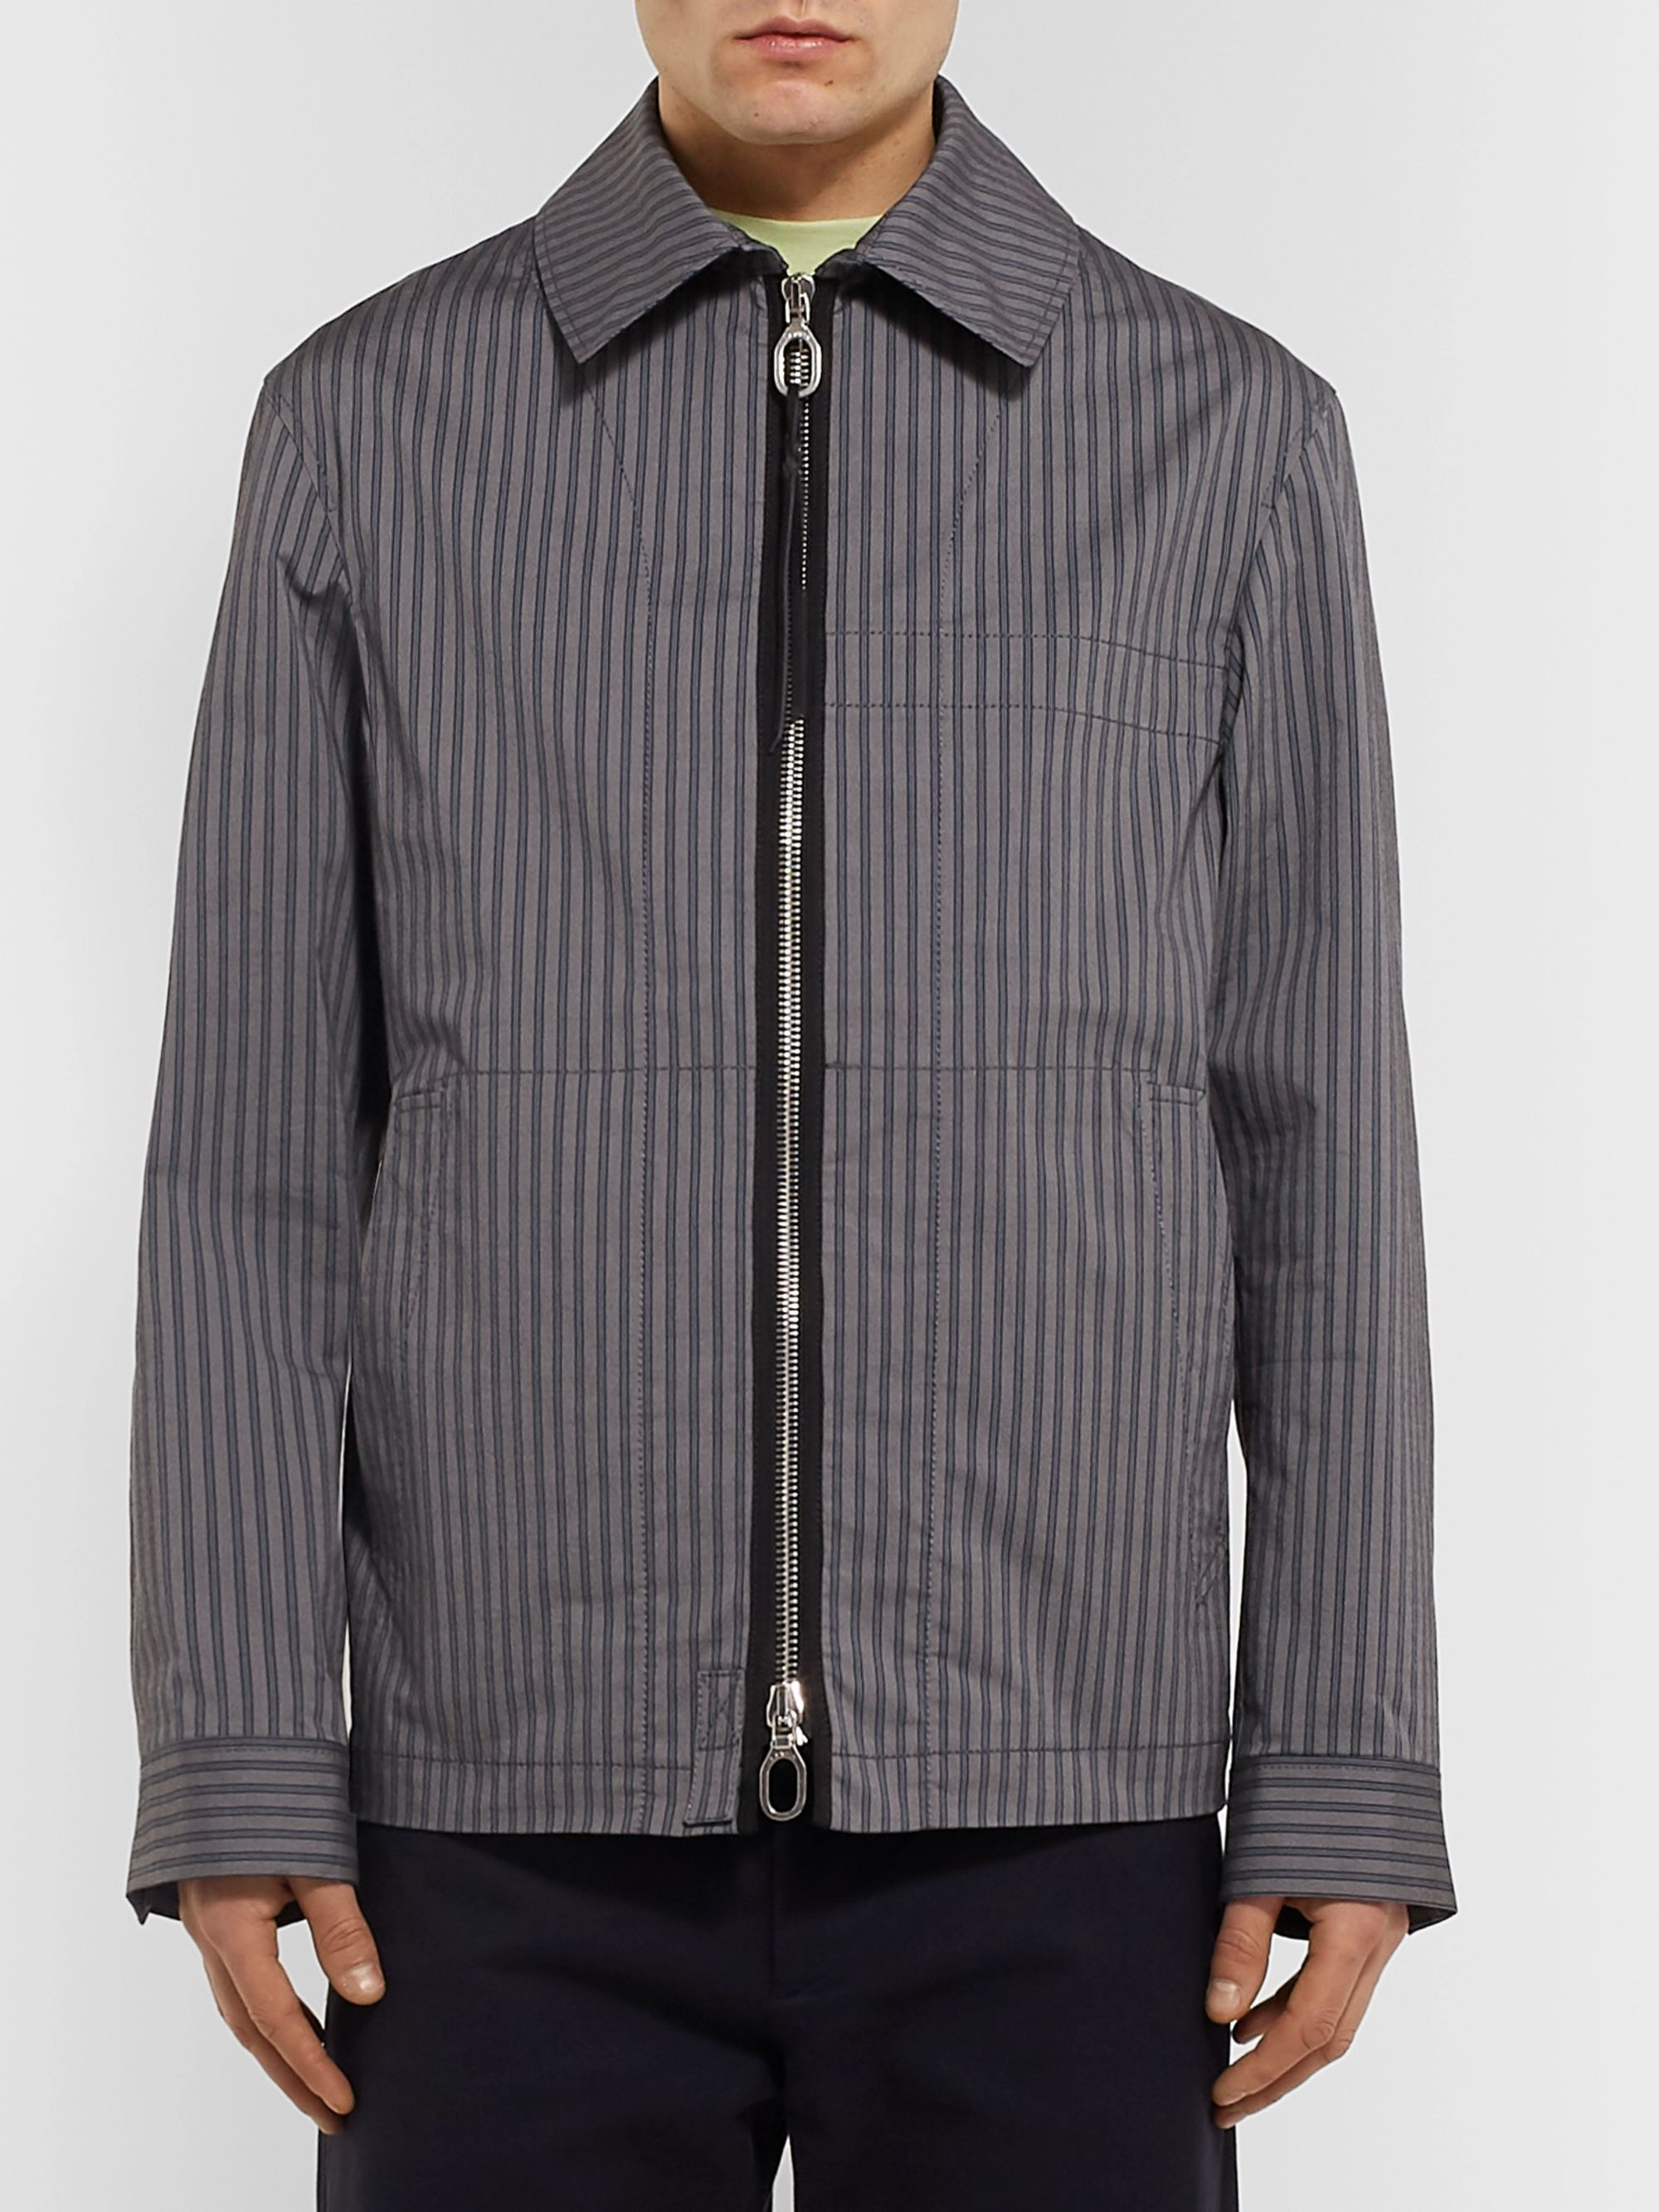 Lanvin Leather-Trimmed Striped Twill Blouson Jacket